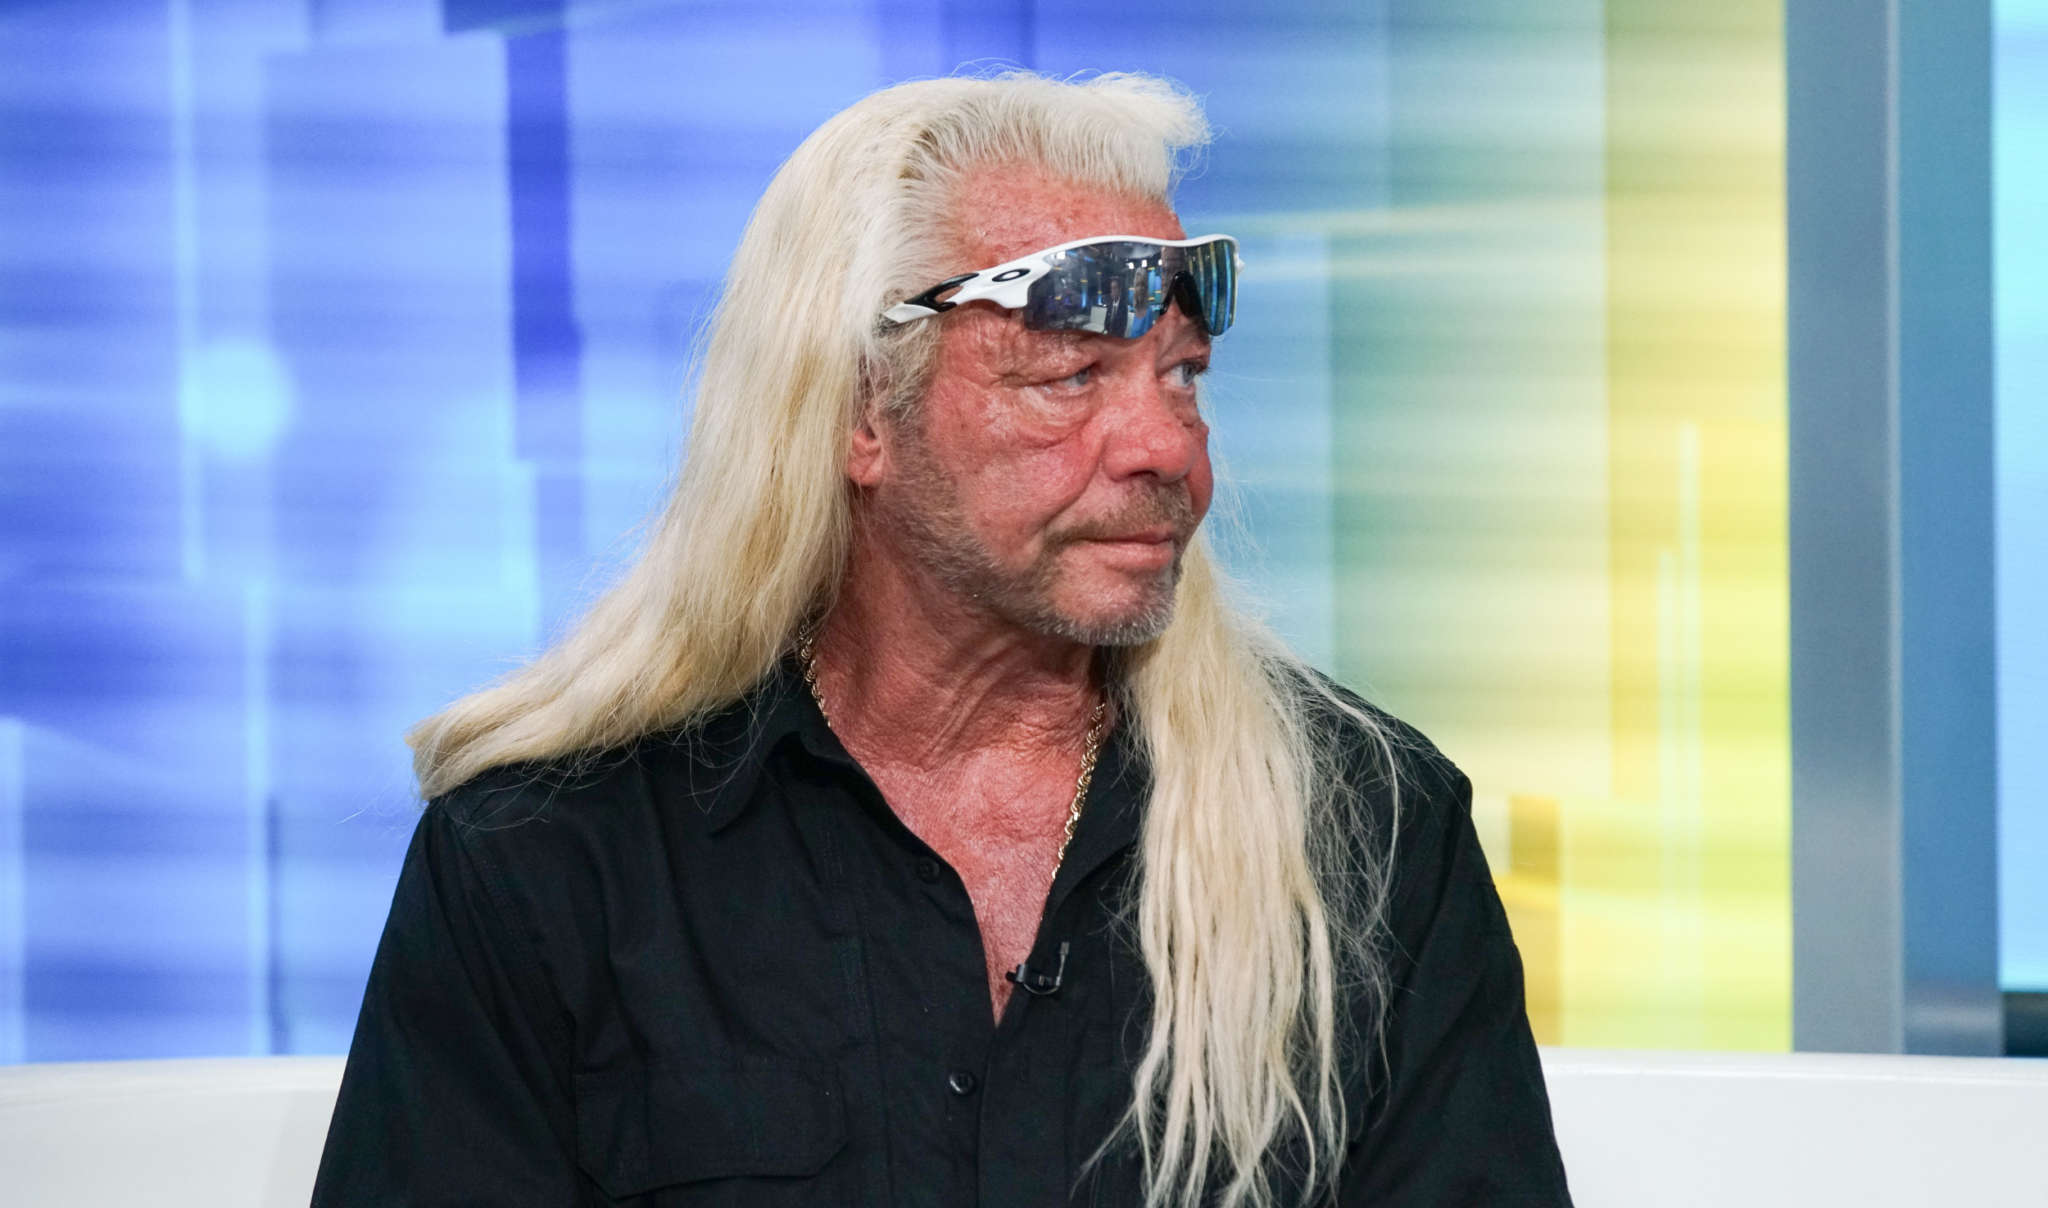 dog-the-bounty-hunter-dances-shirtless-in-hilarious-throwback-video-shared-by-daughter-lyssa-on-fathers-day